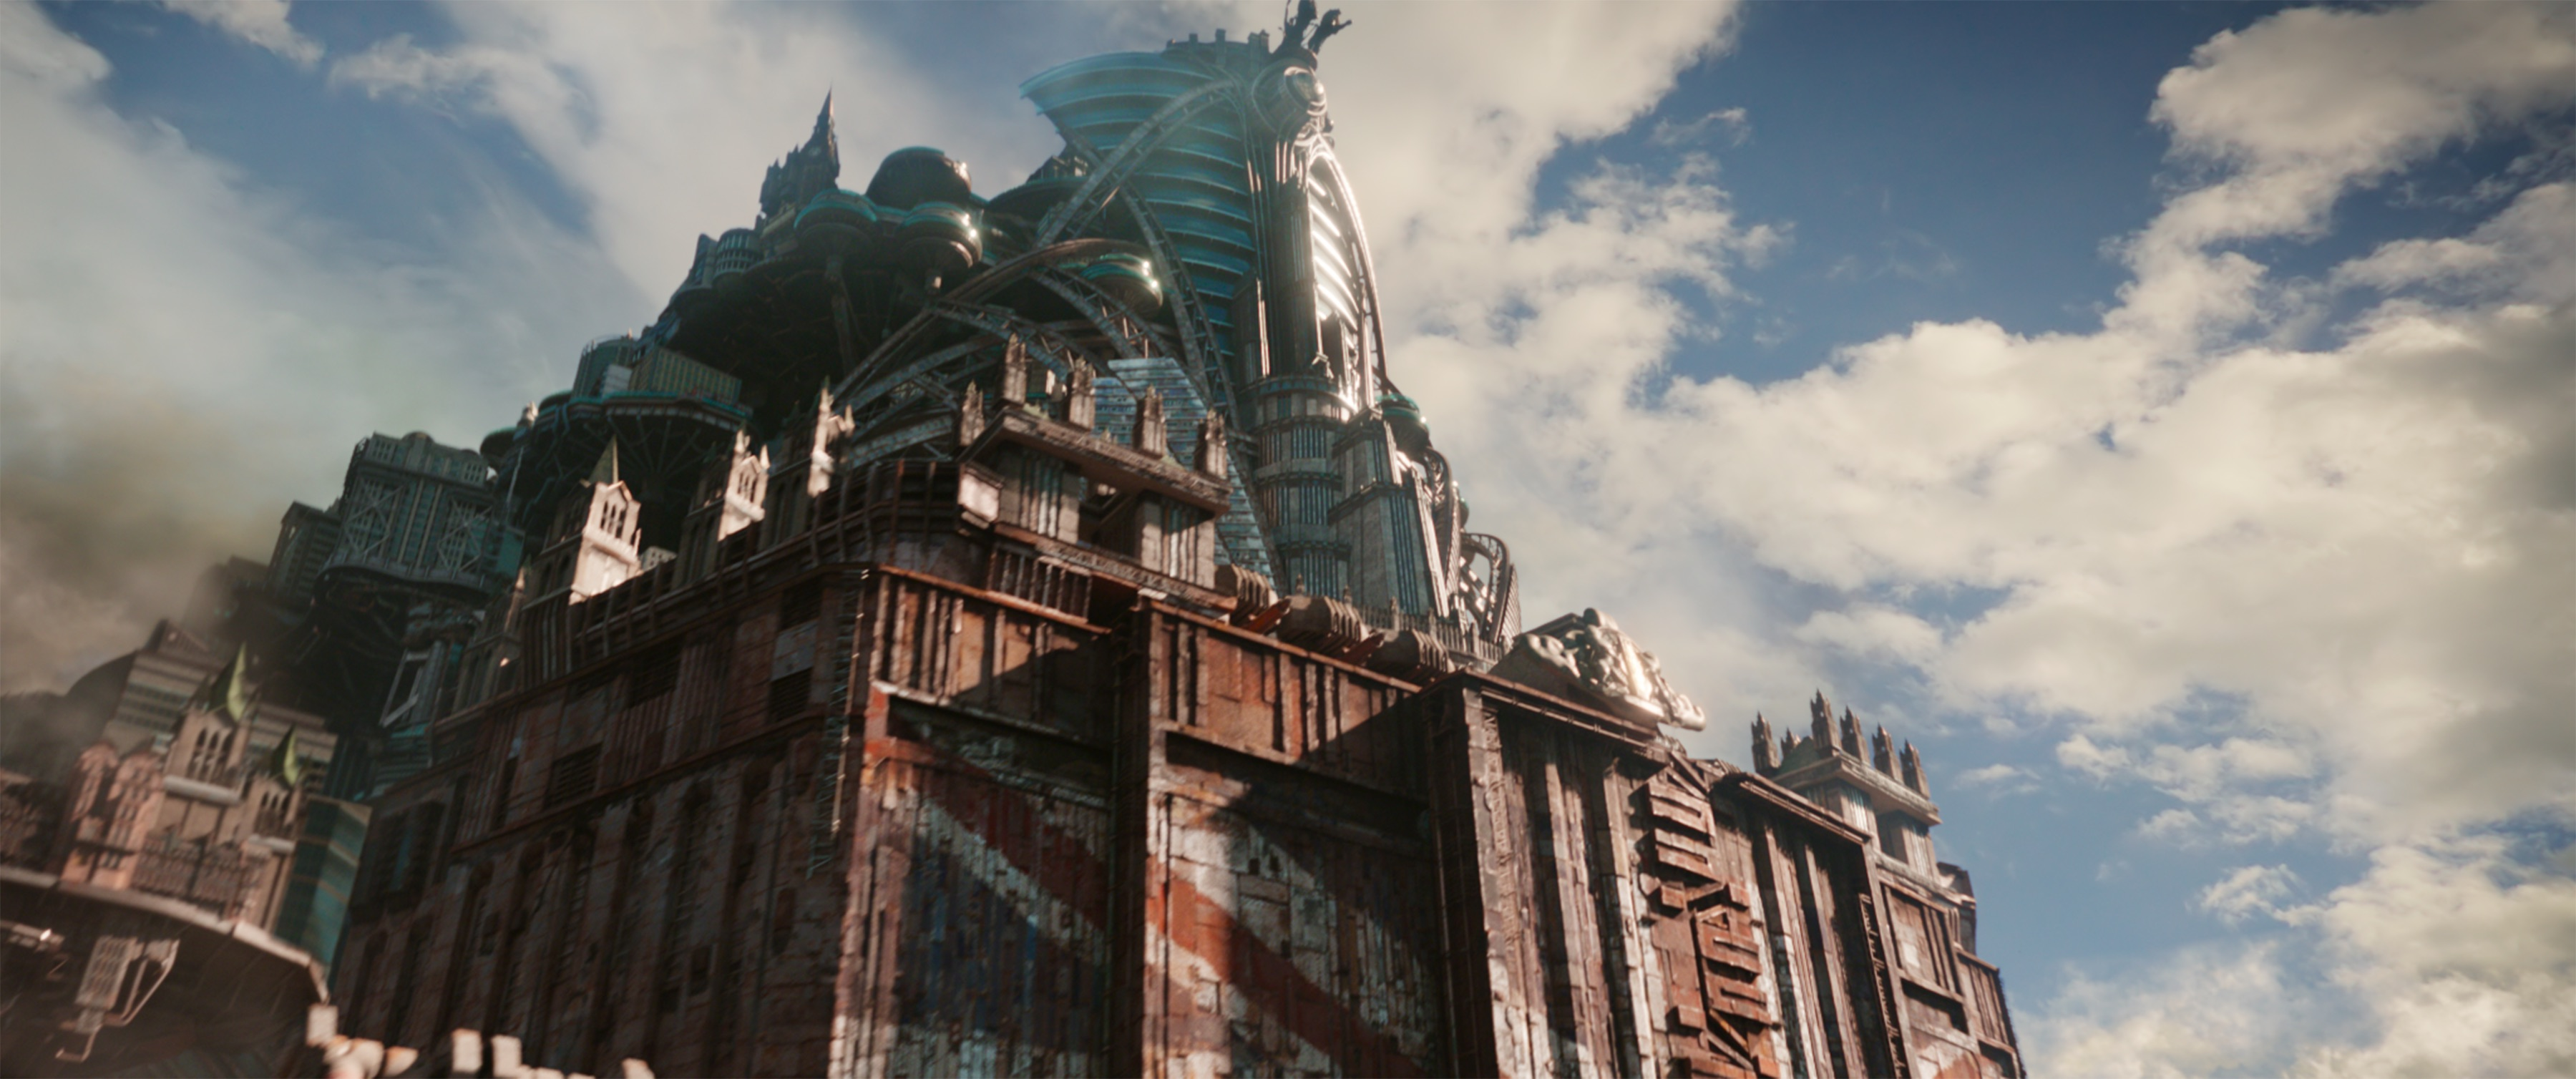 mortal engines traction city christian rivers